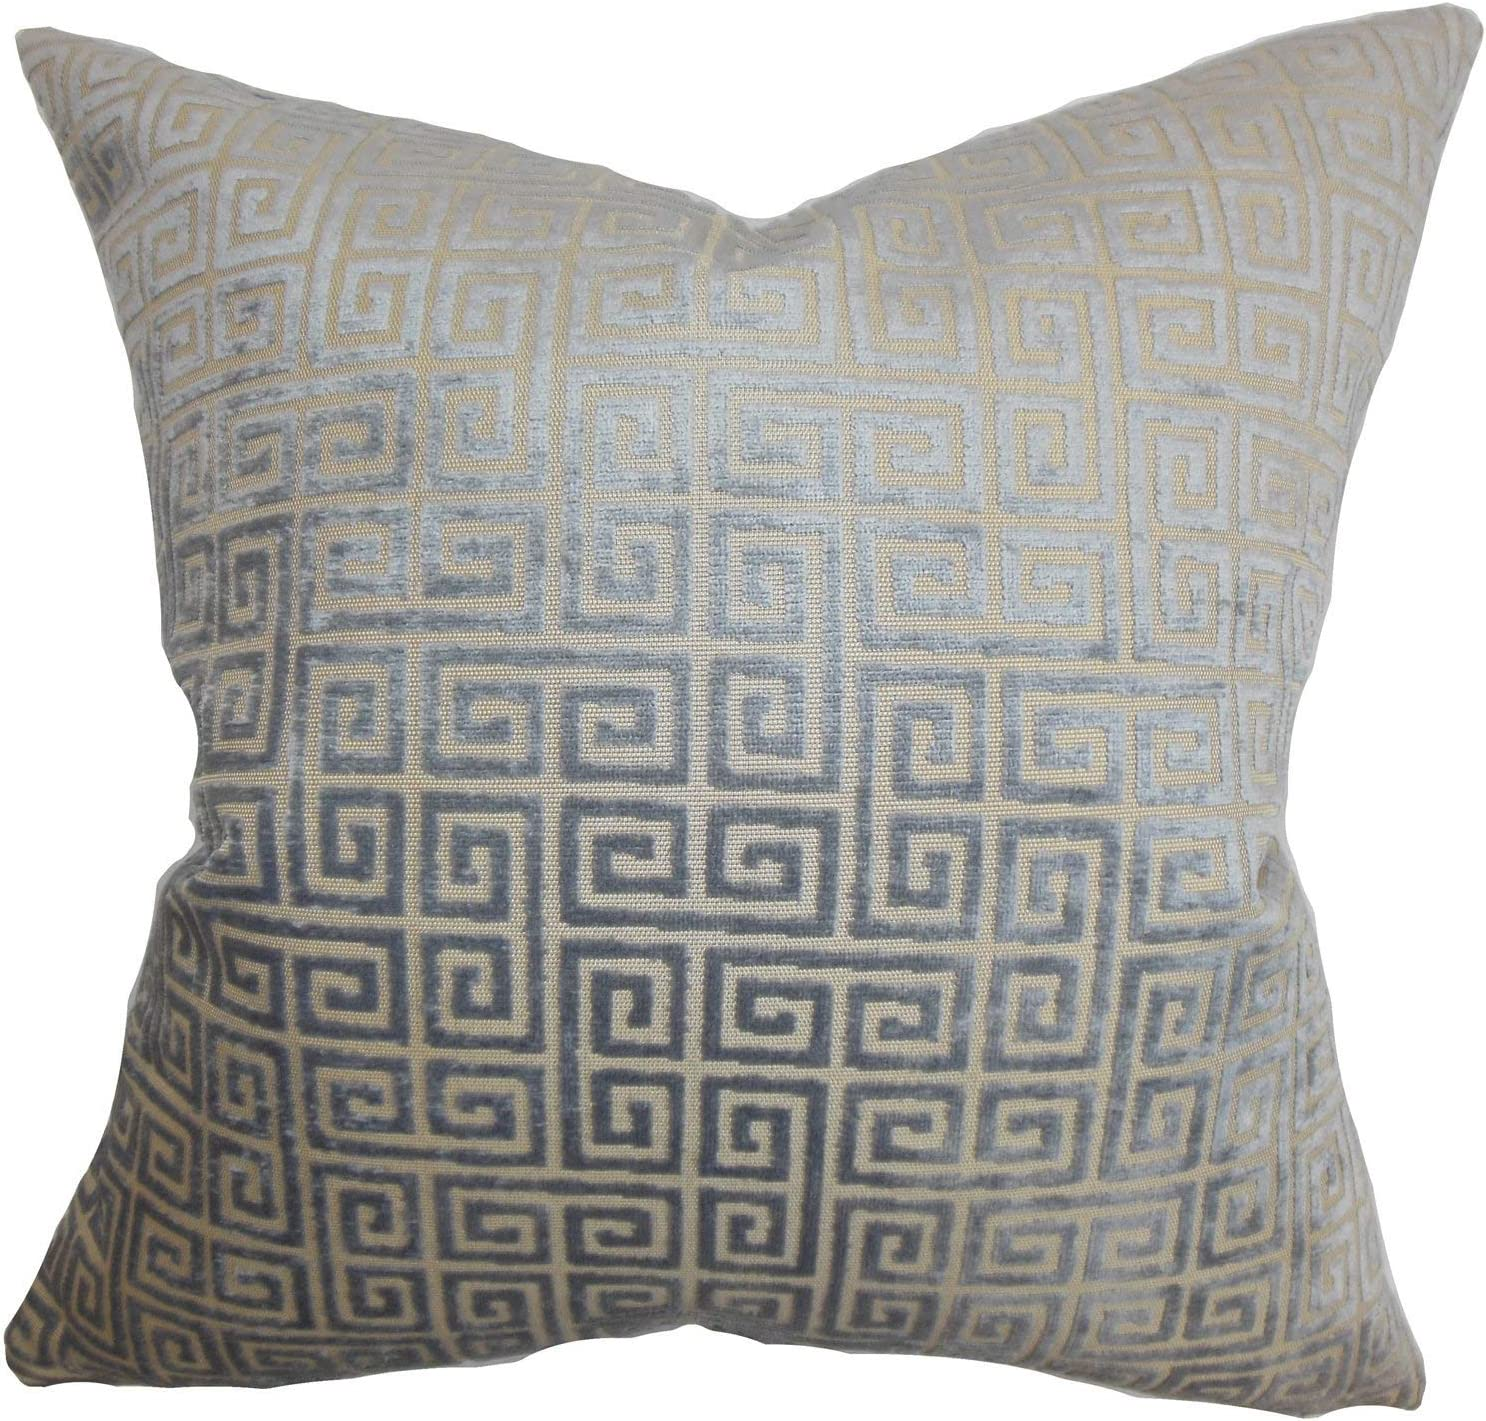 The Pillow Collection Whit Geometric Gray Down Filled Throw Pillow